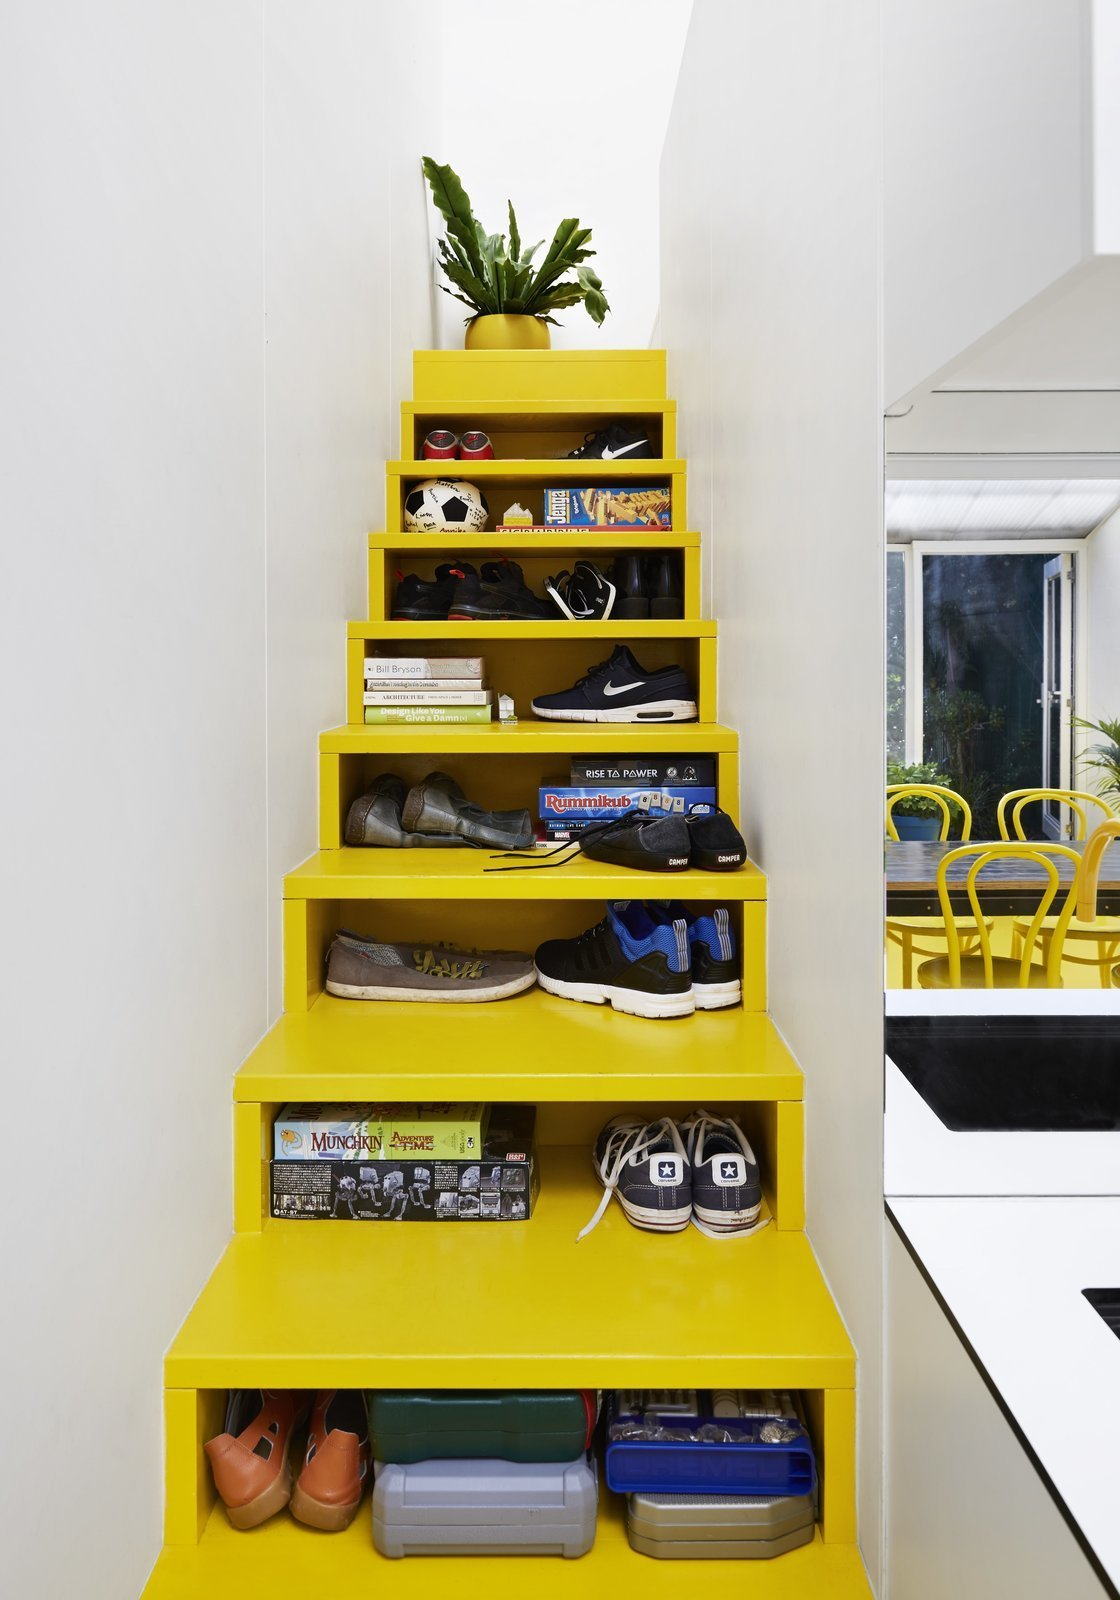 Architect Andrew Maynard's Melbourne home, which also doubles up as the office of his practice Austin Maynard Architects, includes a bright yellow staircase with opening slots in the front that serve as shelving and storage space.